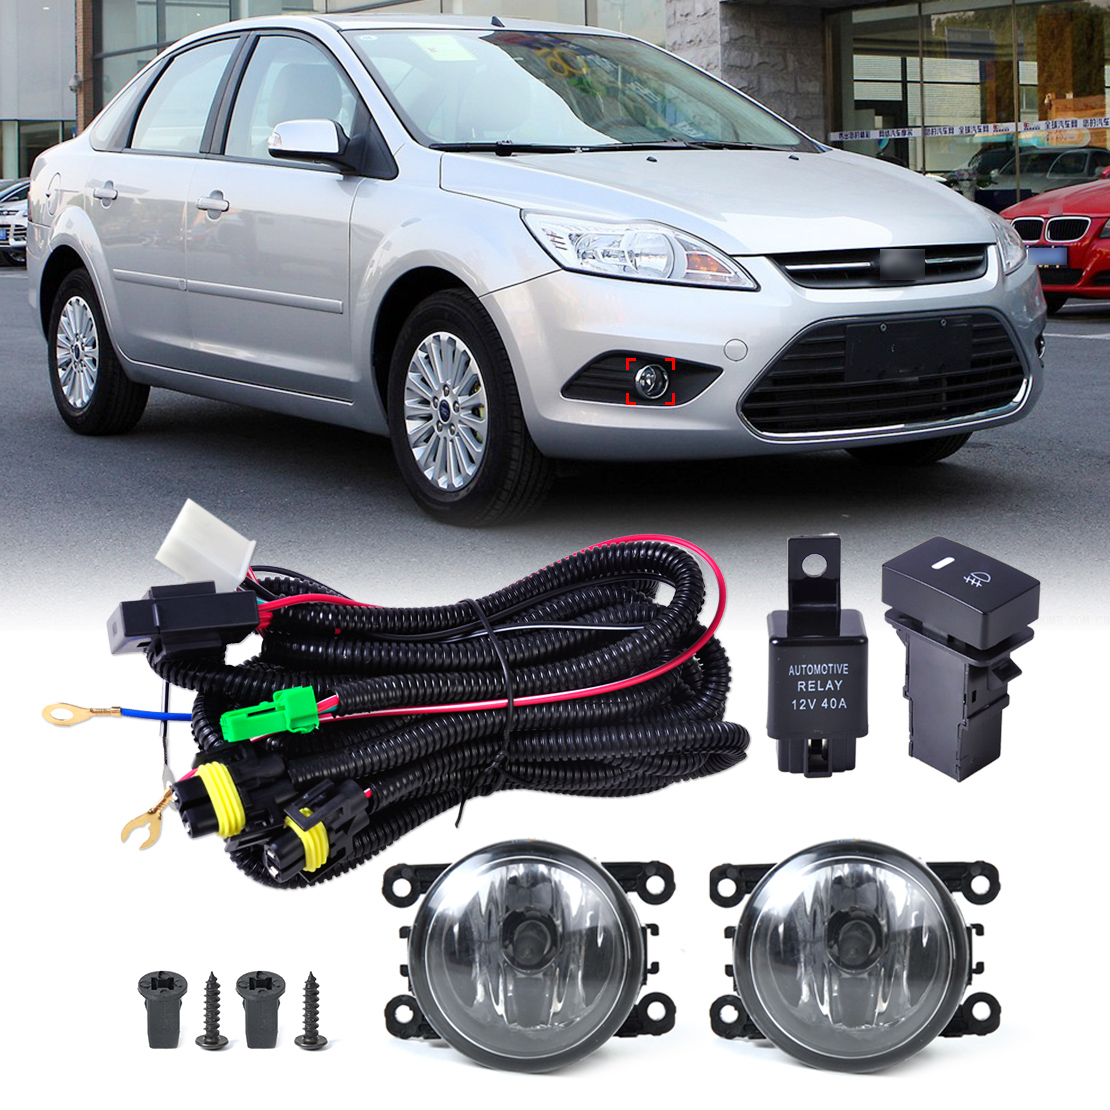 DWCX Wiring Harness Sockets + Switch + 2pcs Fog Lights Lamp 4F9Z-15200-AA for Ford Focus Honda CR-V Acura Nissan Suzuki Subaru for opel astra h gtc 2005 15 h11 wiring harness sockets wire connector switch 2 fog lights drl front bumper 5d lens led lamp